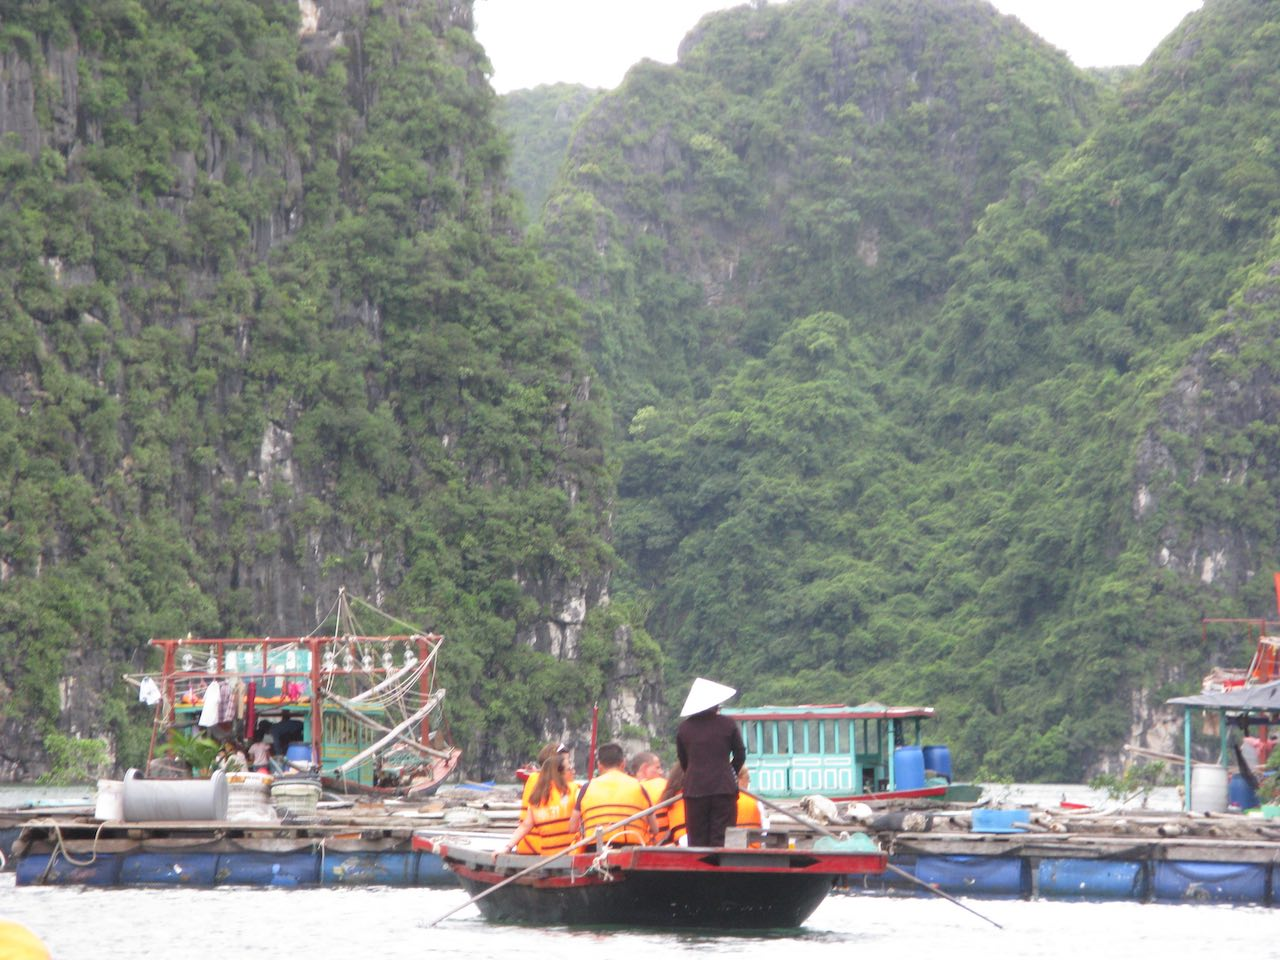 Vietnam - Halong Bay - fishing village